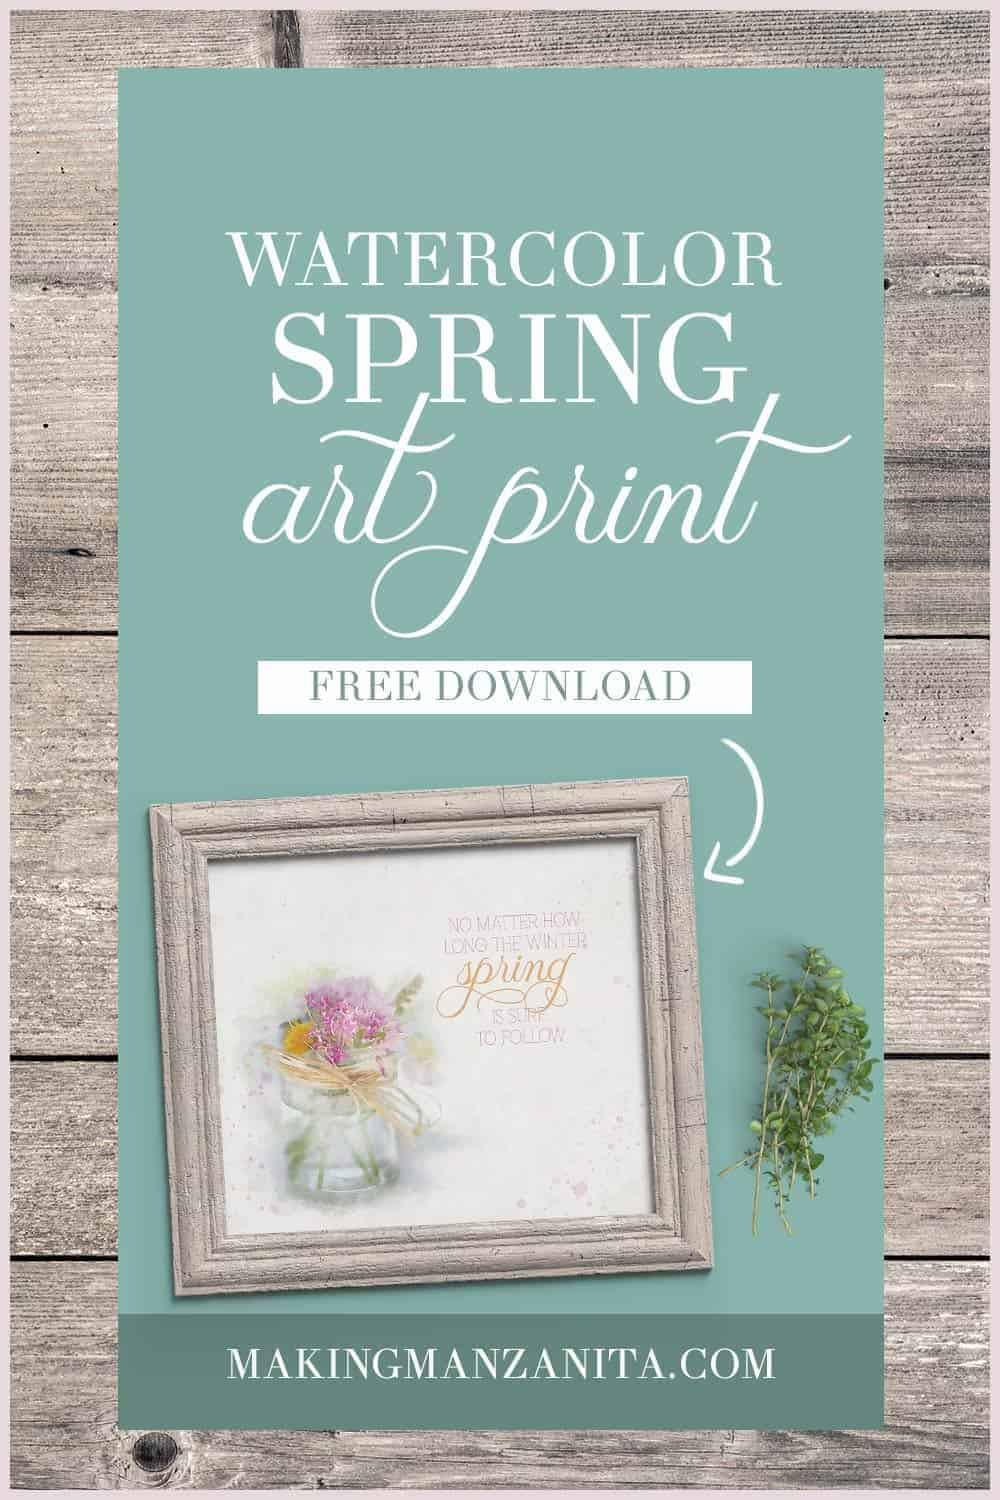 Printables are such a great way to easily decorate for the seasons. If you're wanting to add a little spring cheer to your home, you're going to love this farmhouse spring art printable to easily decorate for spring!